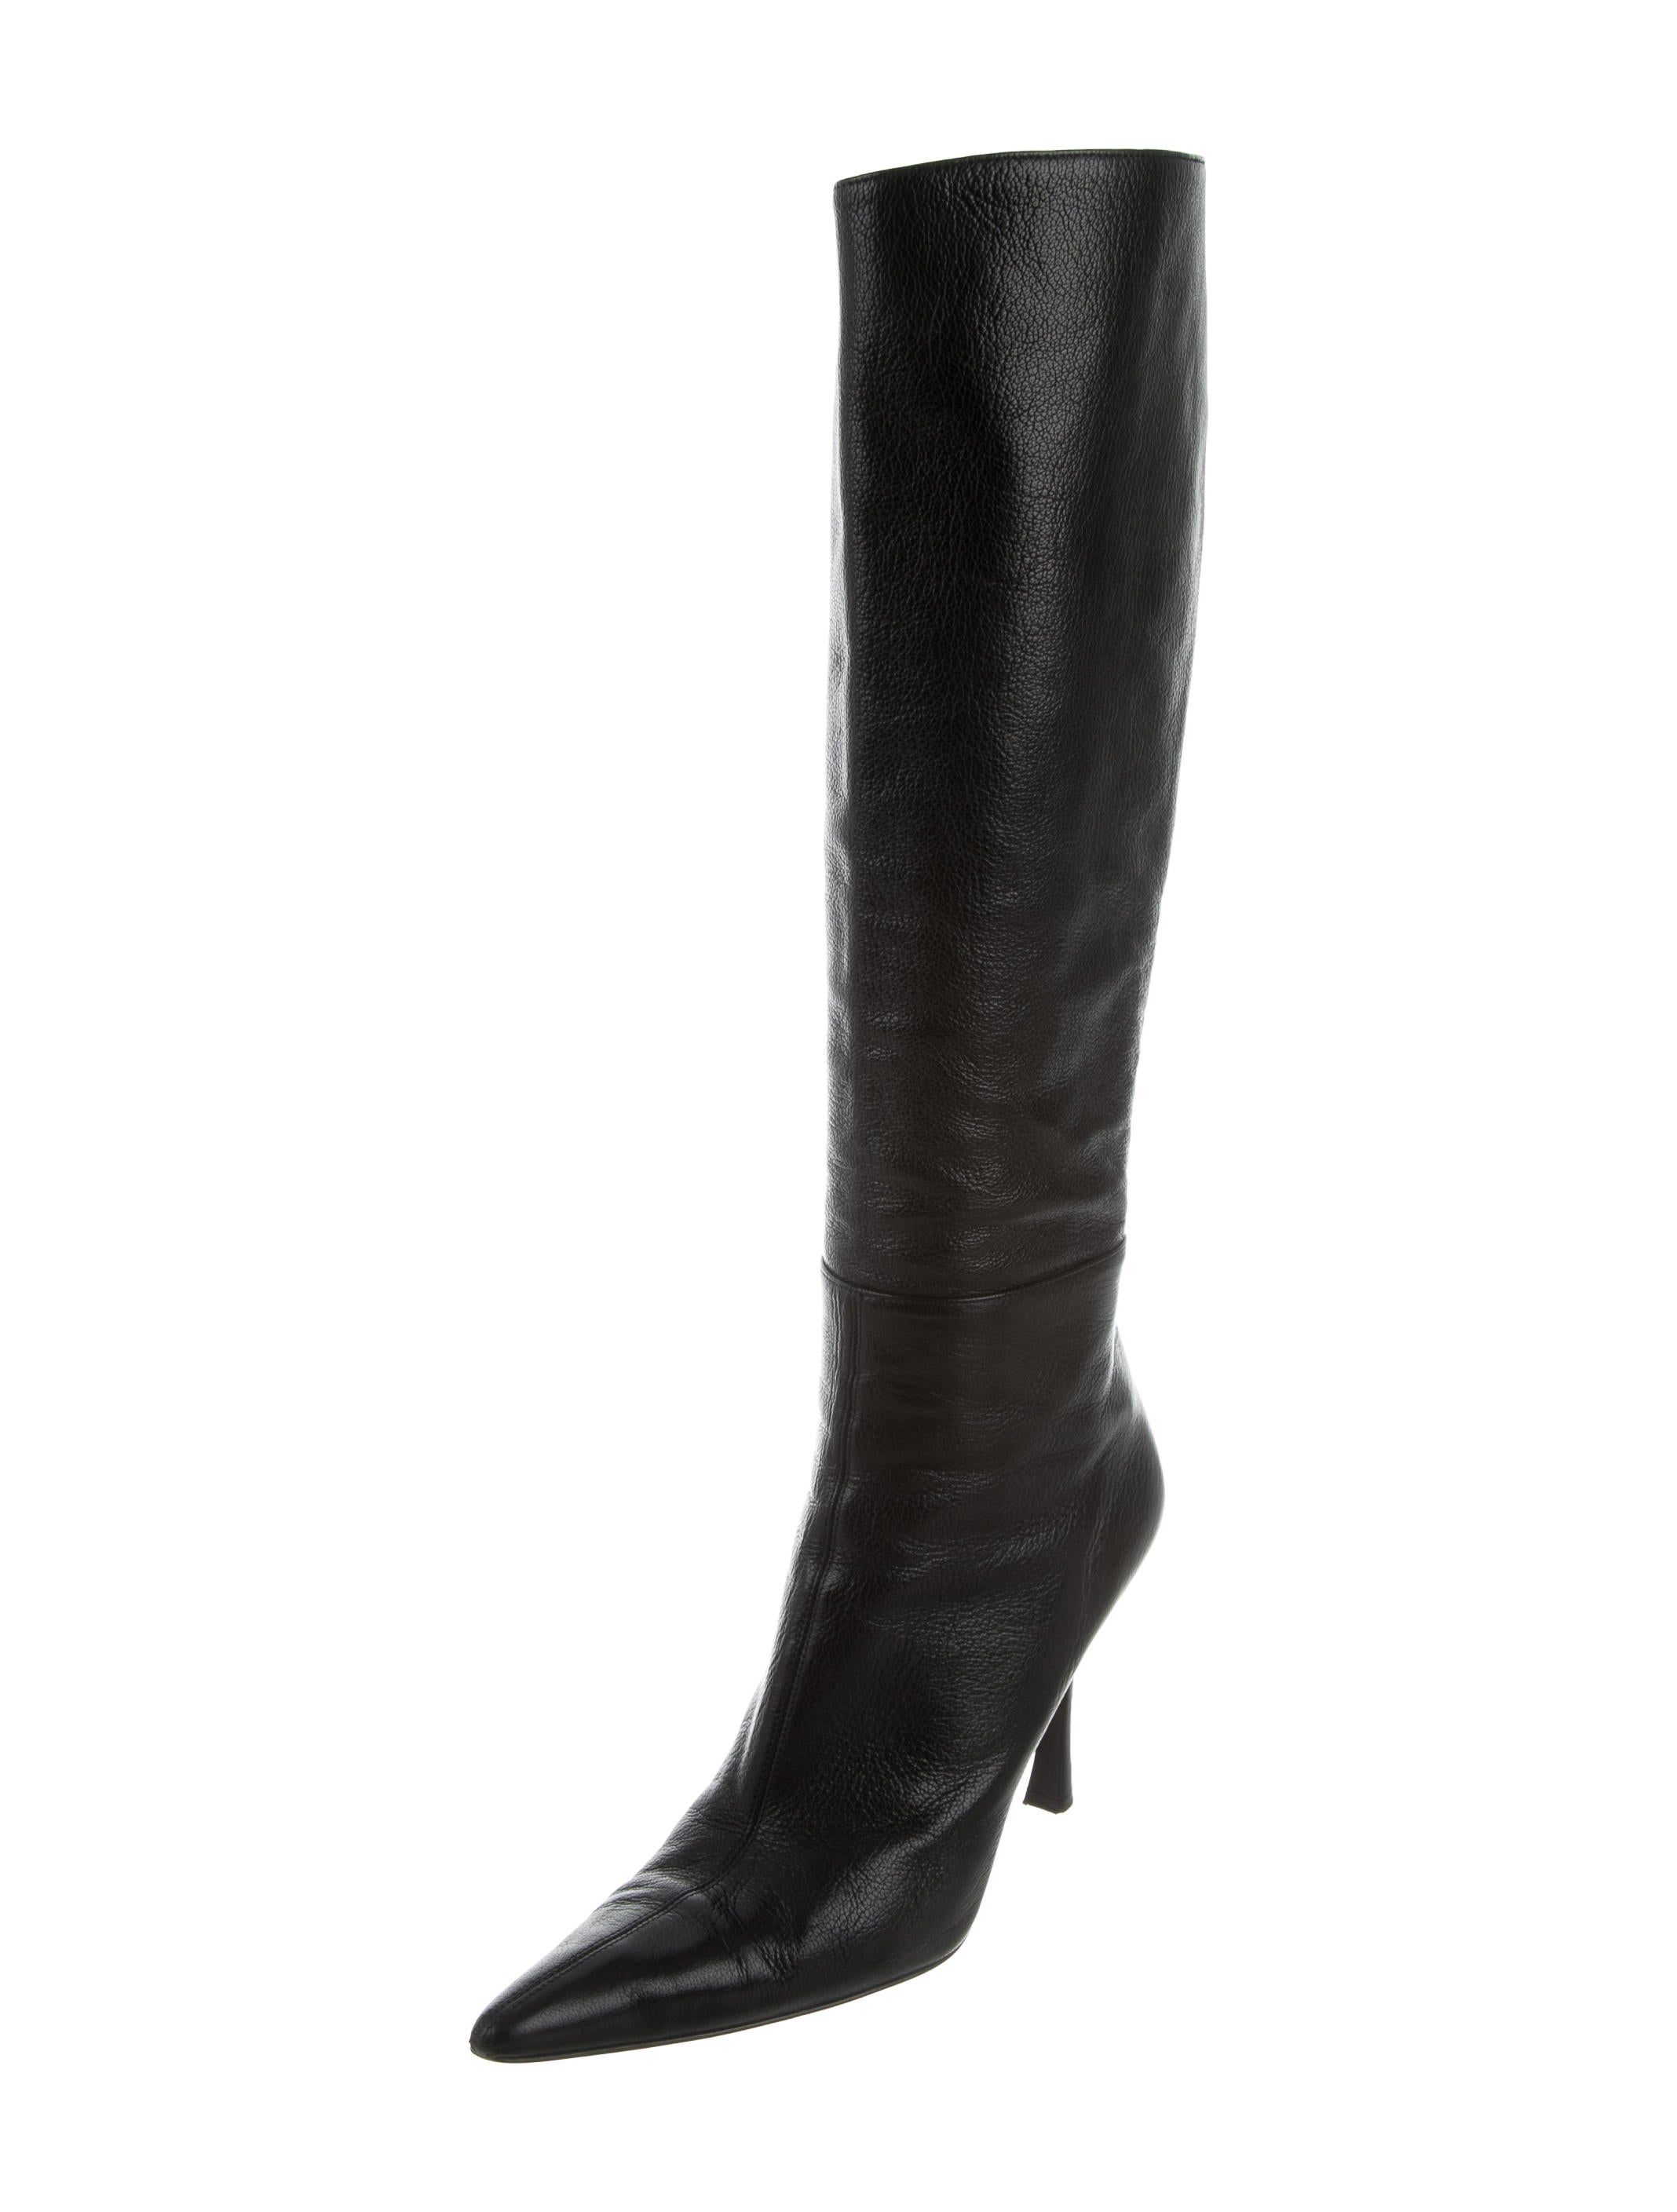 gucci pointed toe knee high boots shoes guc131442